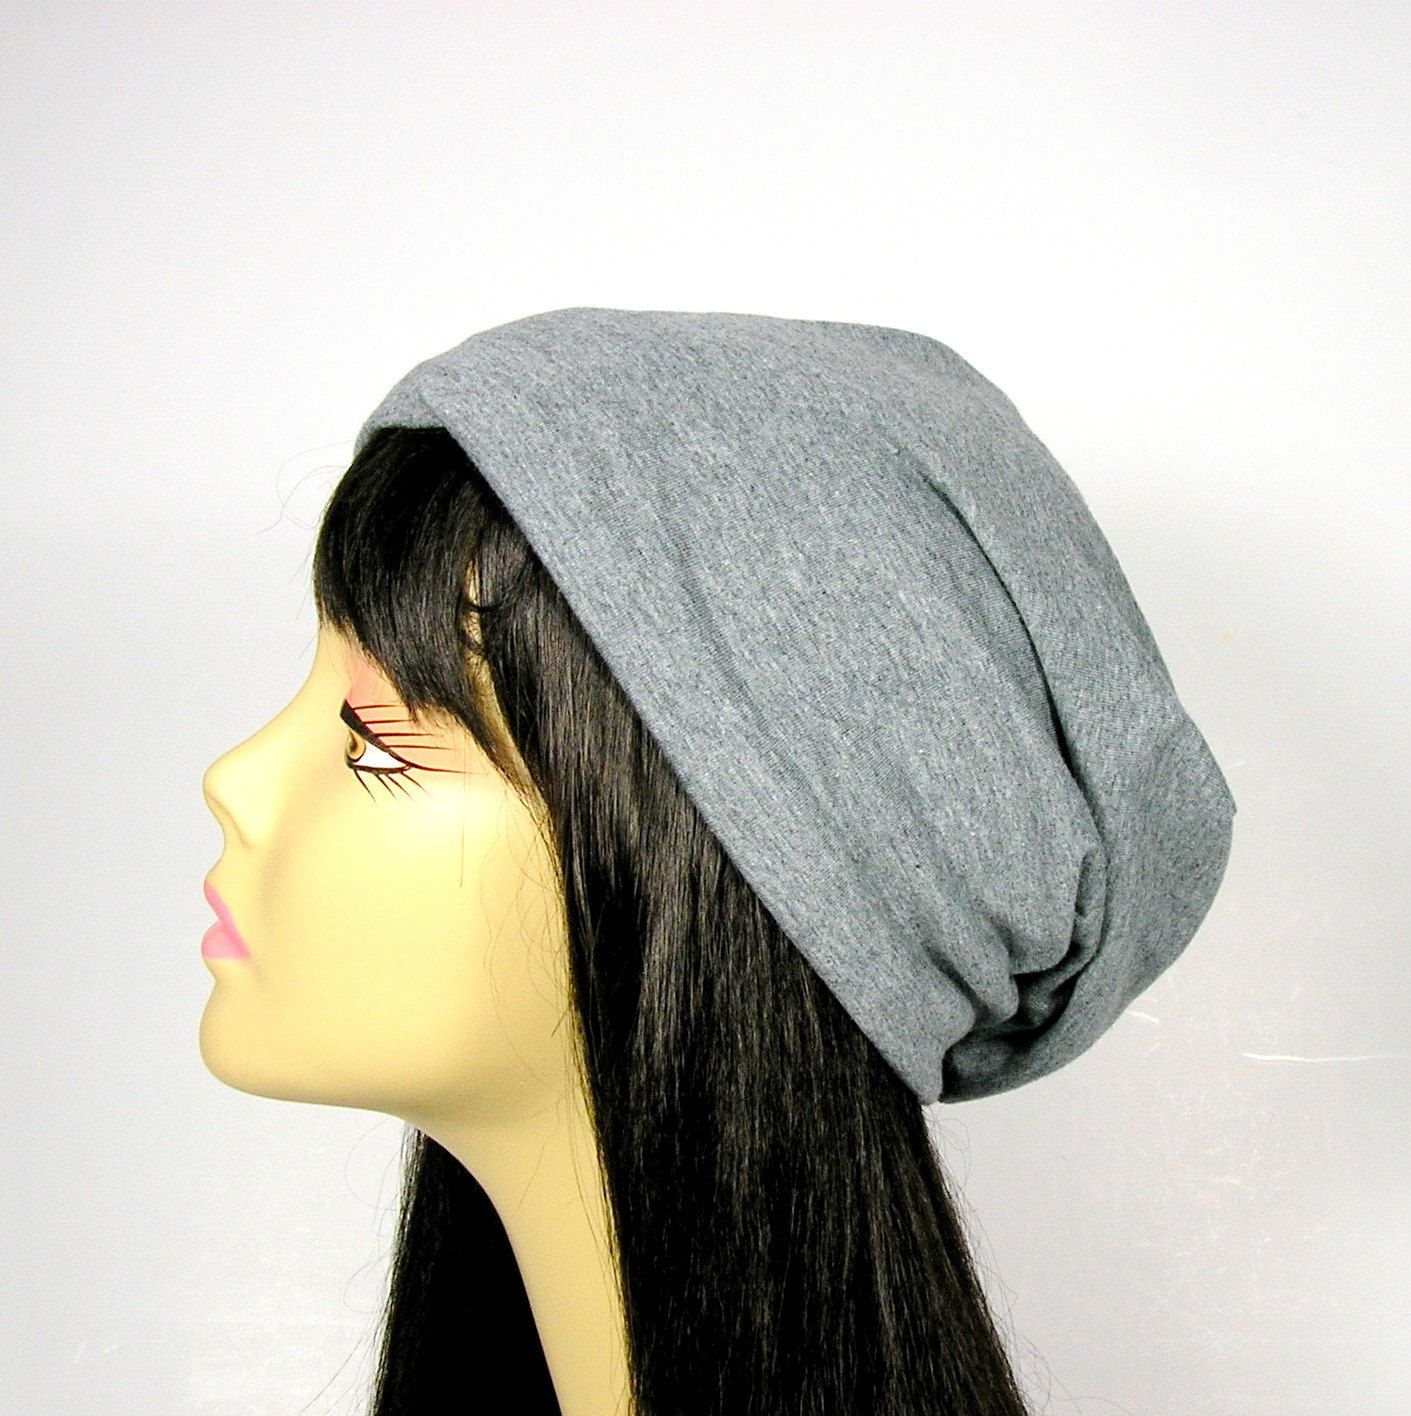 Gray Cotton Jersey Knit Slouchy Beanie Cotton Chemo Cap Hair Loss Hats  Headcovers Beanies Light Weight Unisex Slouch Hats Gray Beanies by  LooptheLoop on ... b68105077546